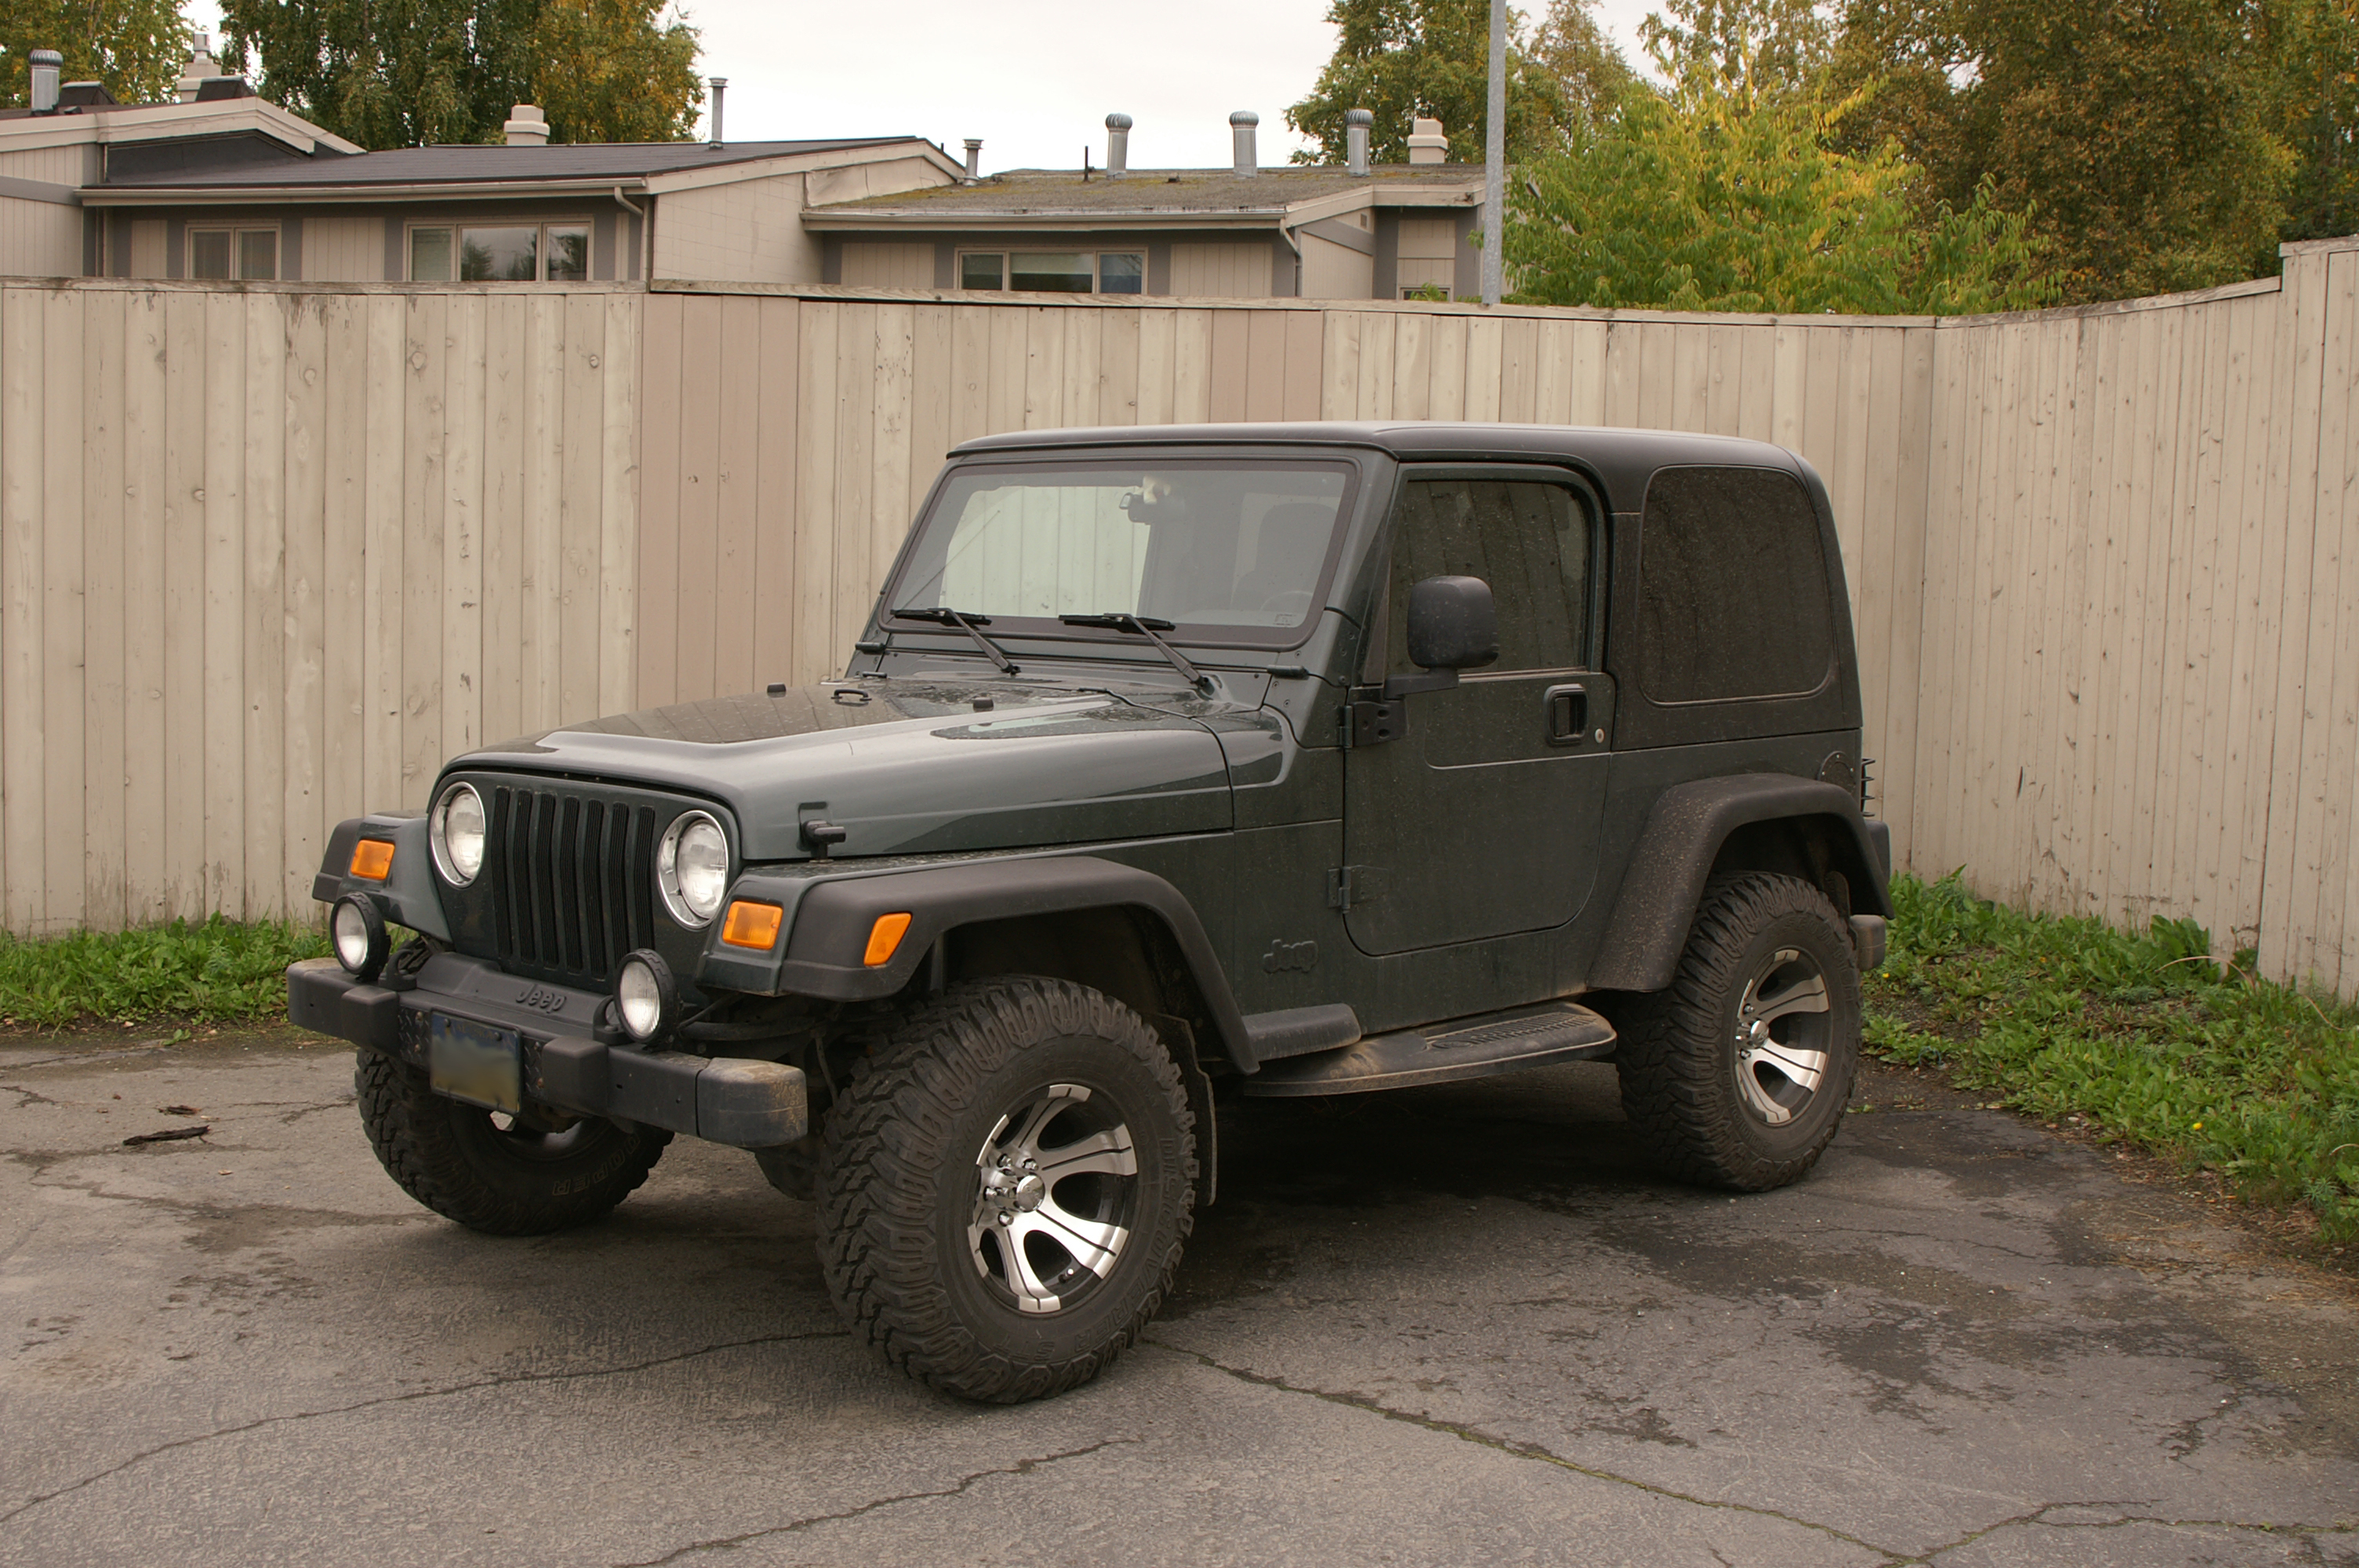 File:2003 Jeep Wrangler Sport.jpg - Wikimedia Commons